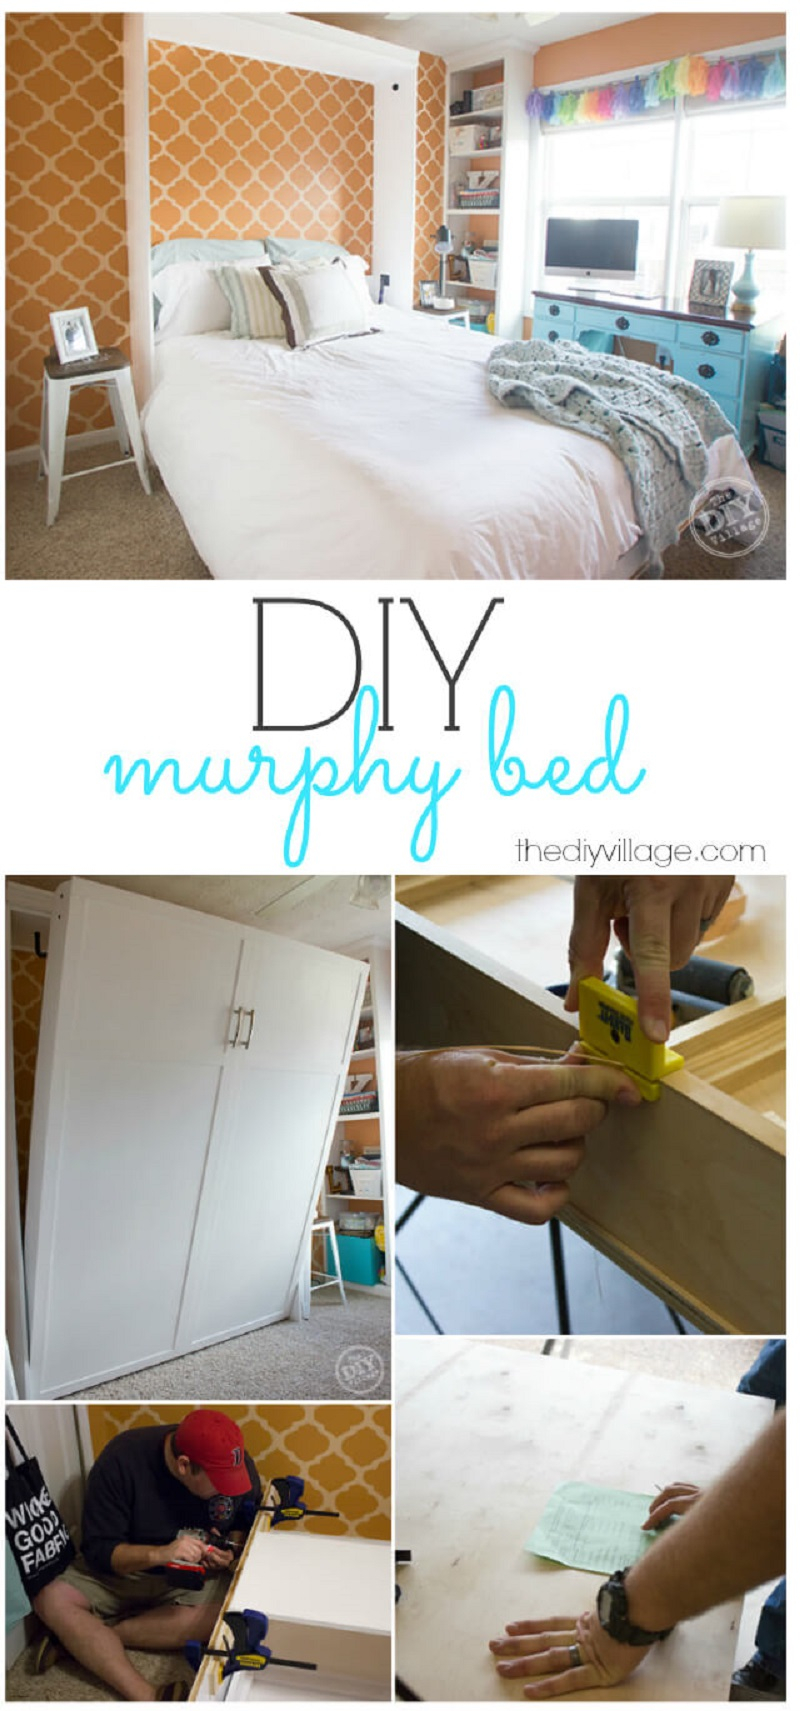 Murphy bed idea for an office space